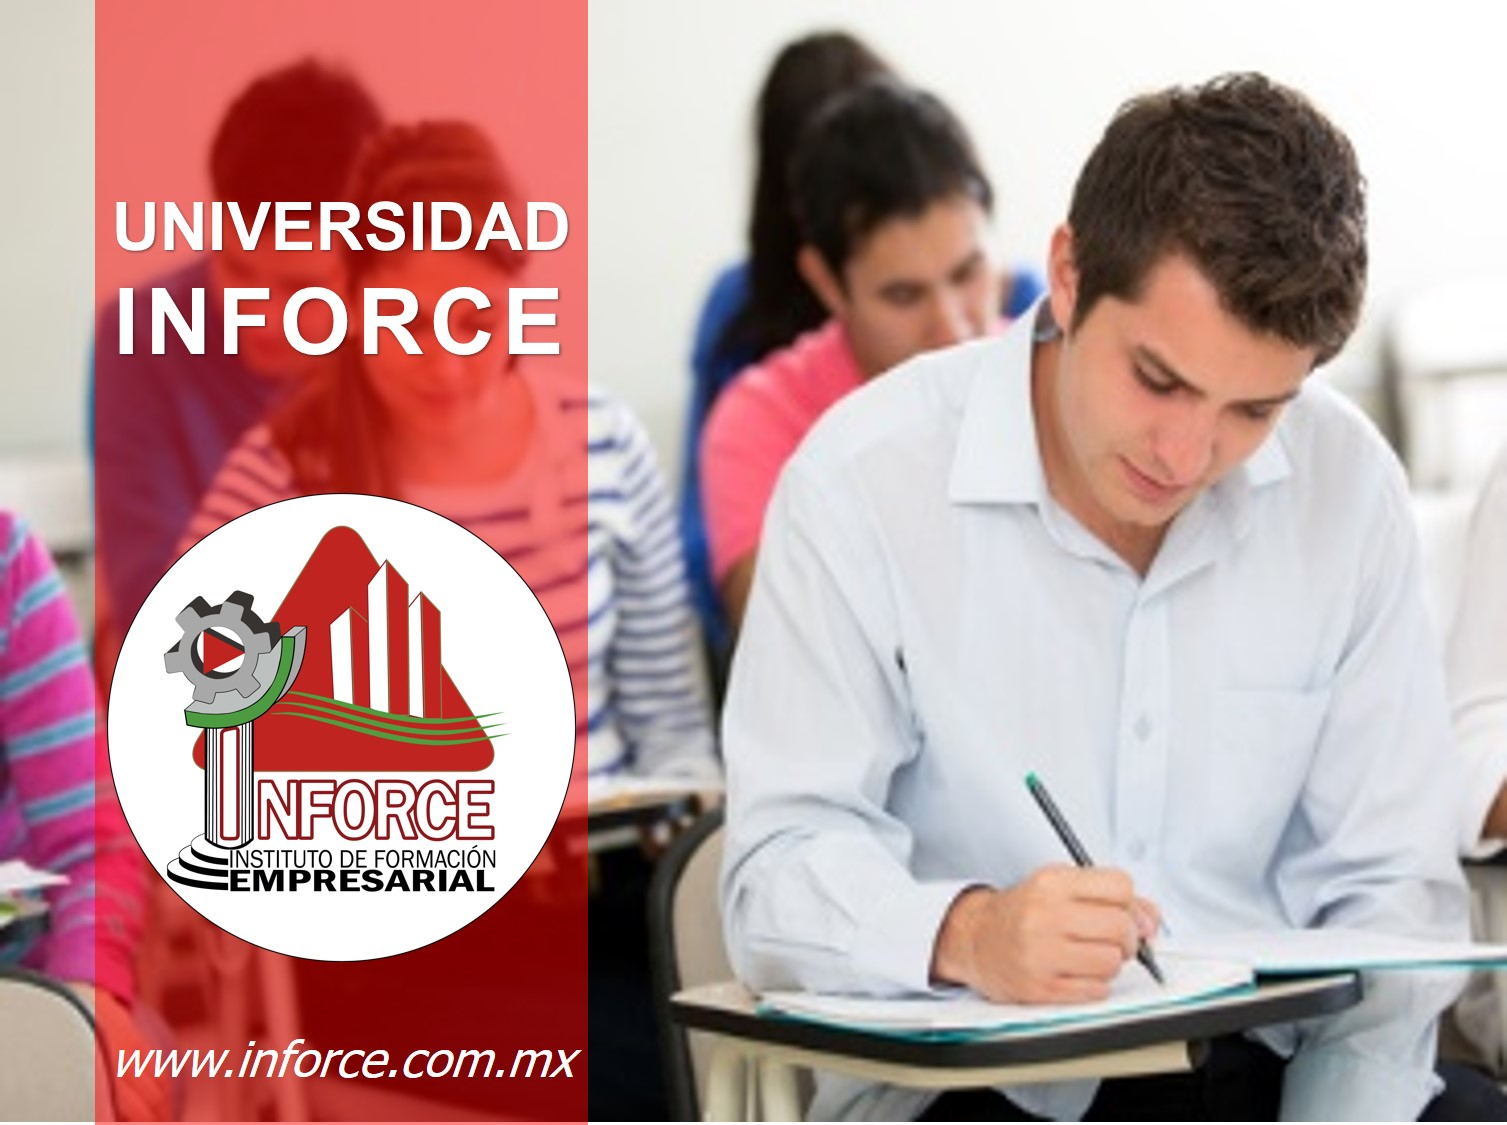 universidad-inforce-2.jpg